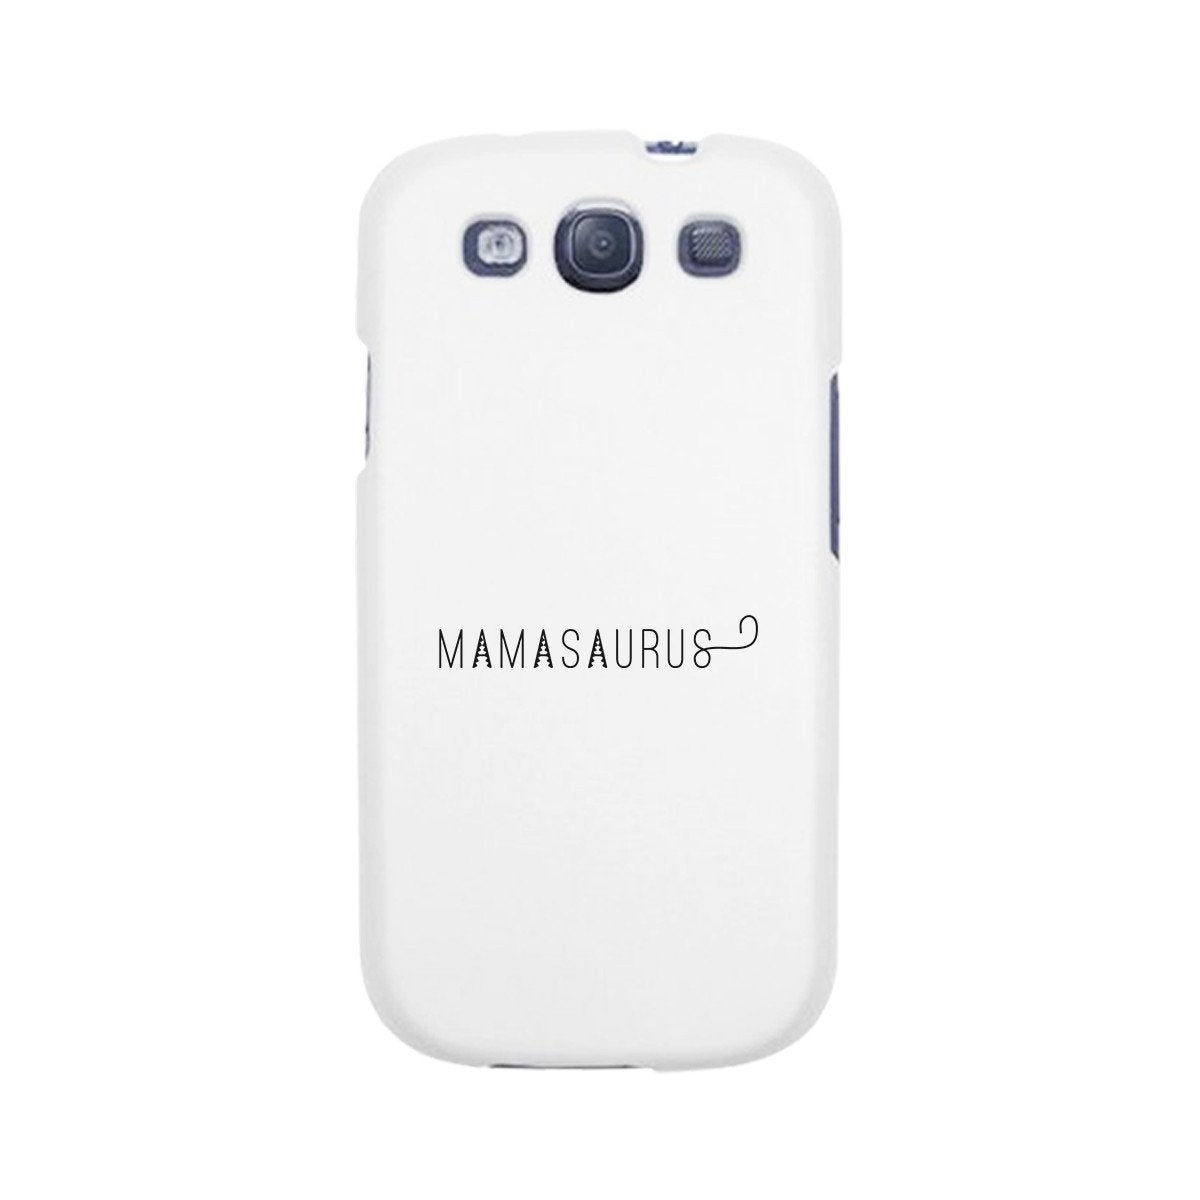 Mamasaurus White Phone Case Perfect Gift Ideas For Mom of Boys